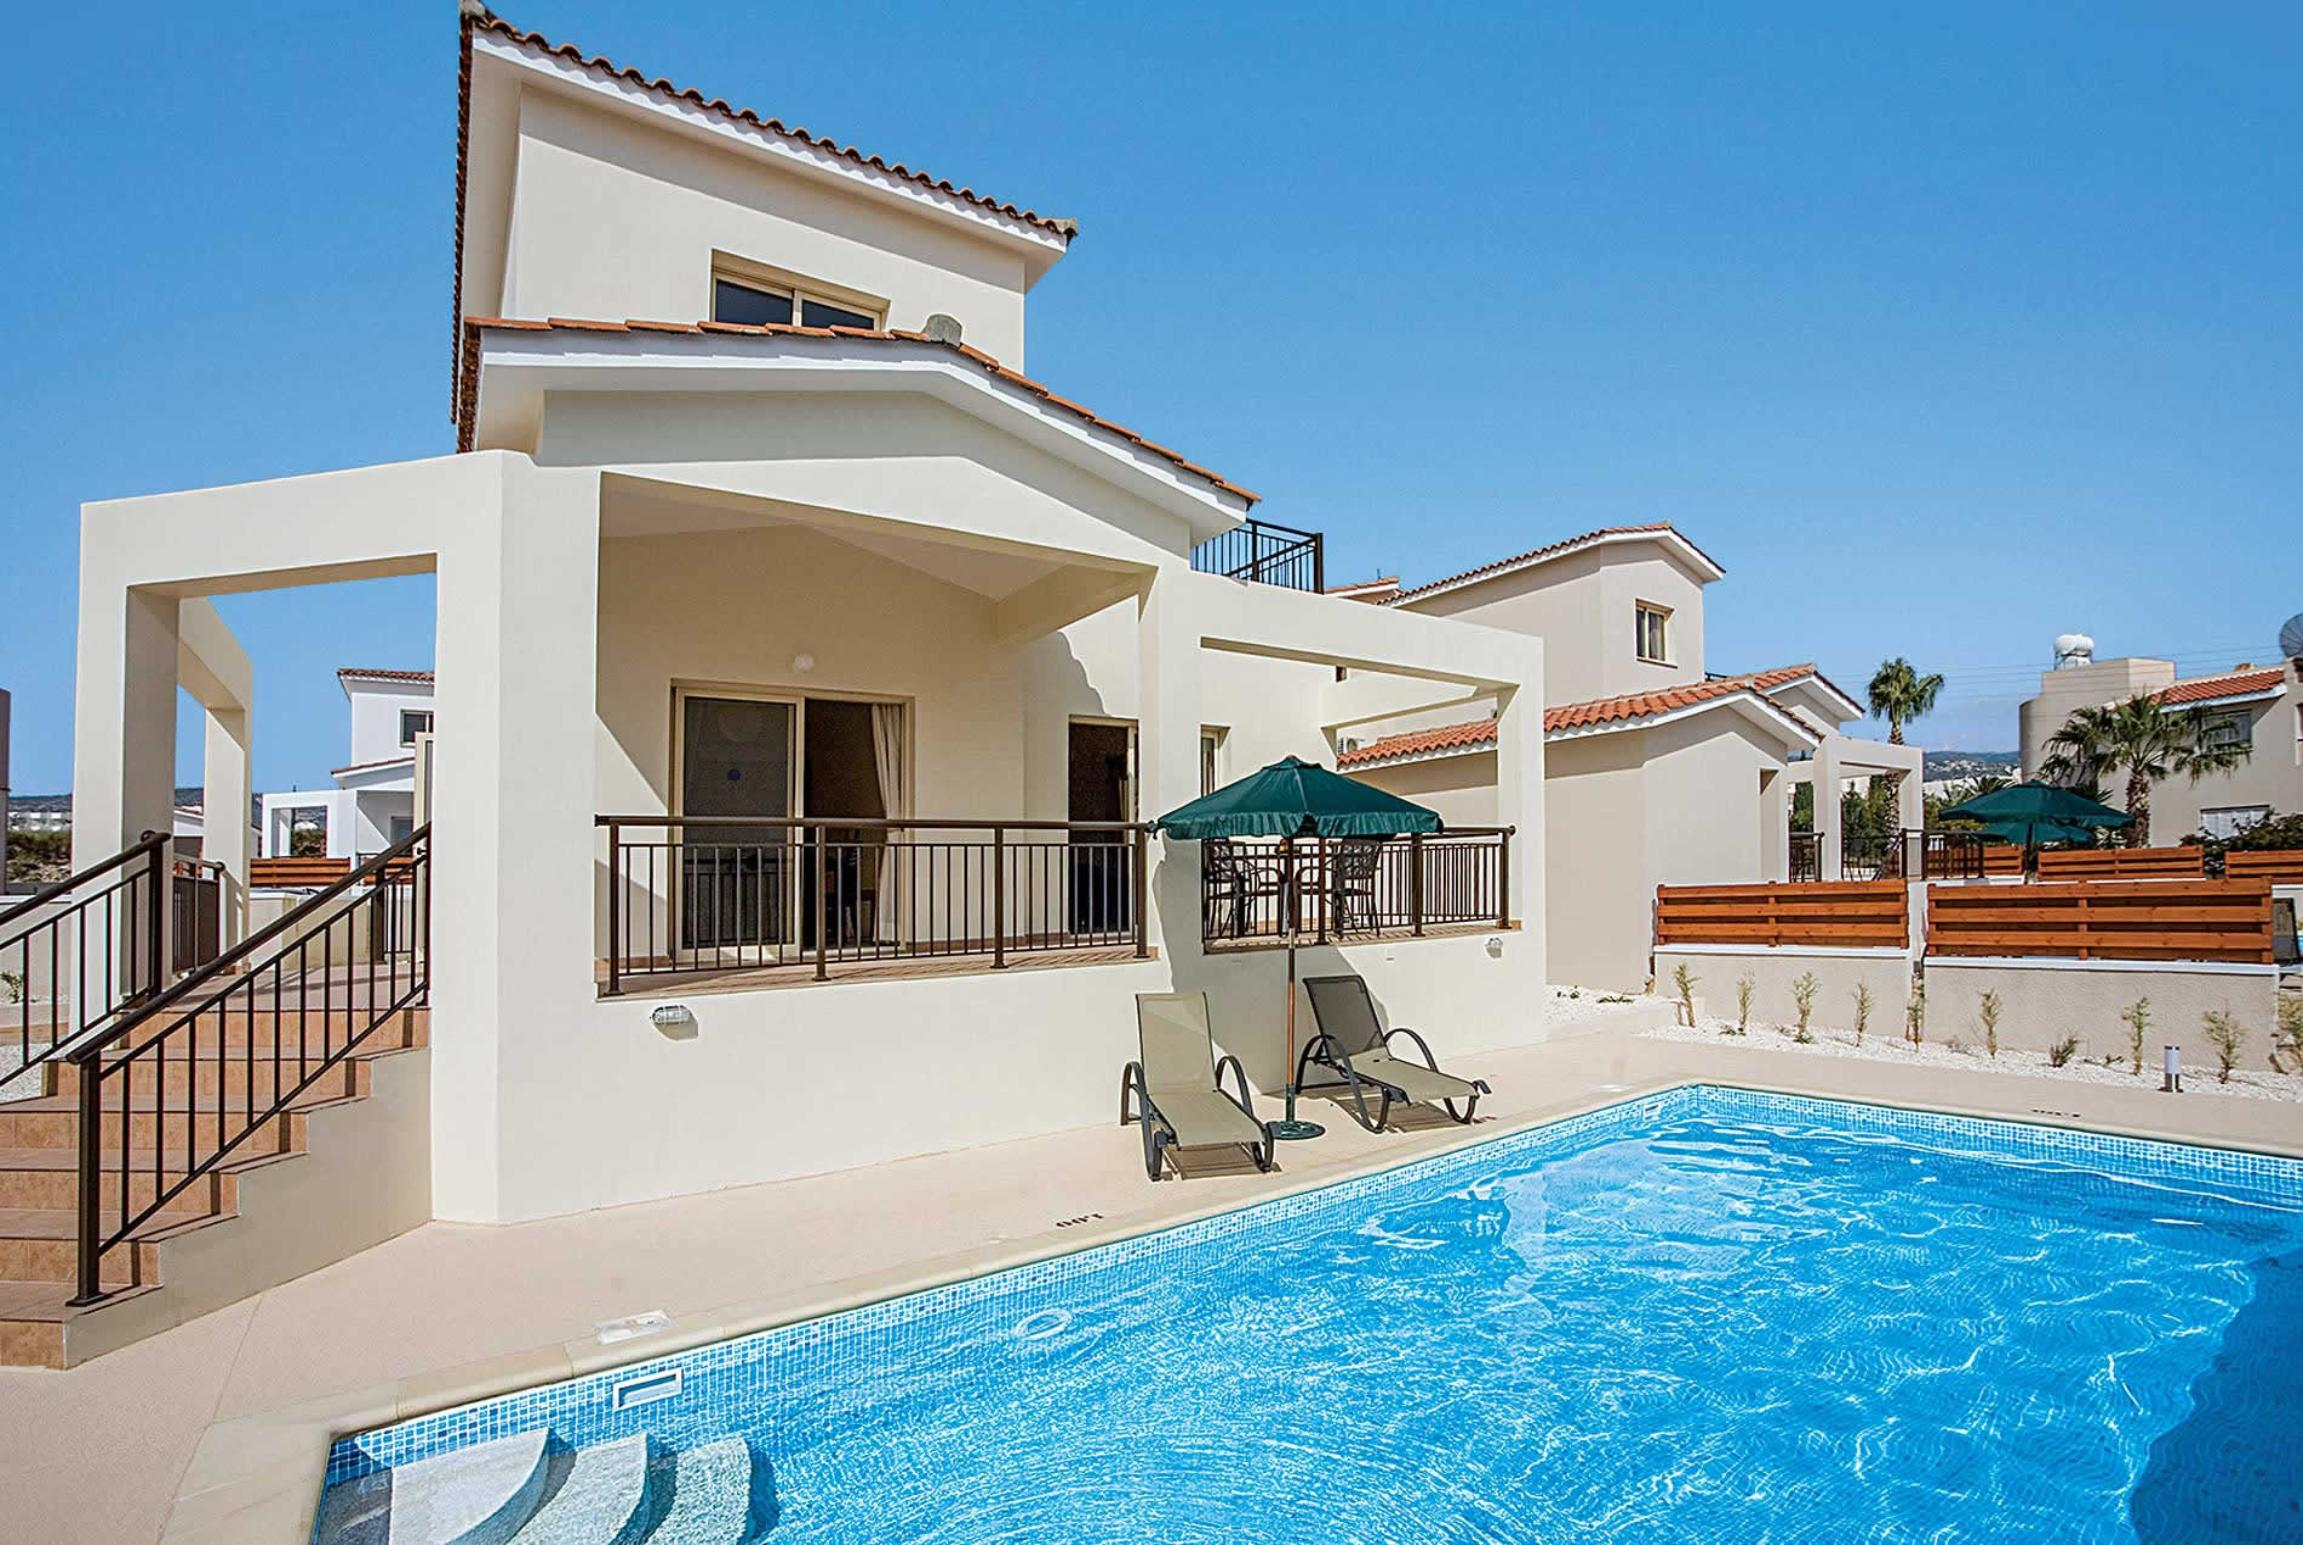 Photo of Coralia Dream 5 villa